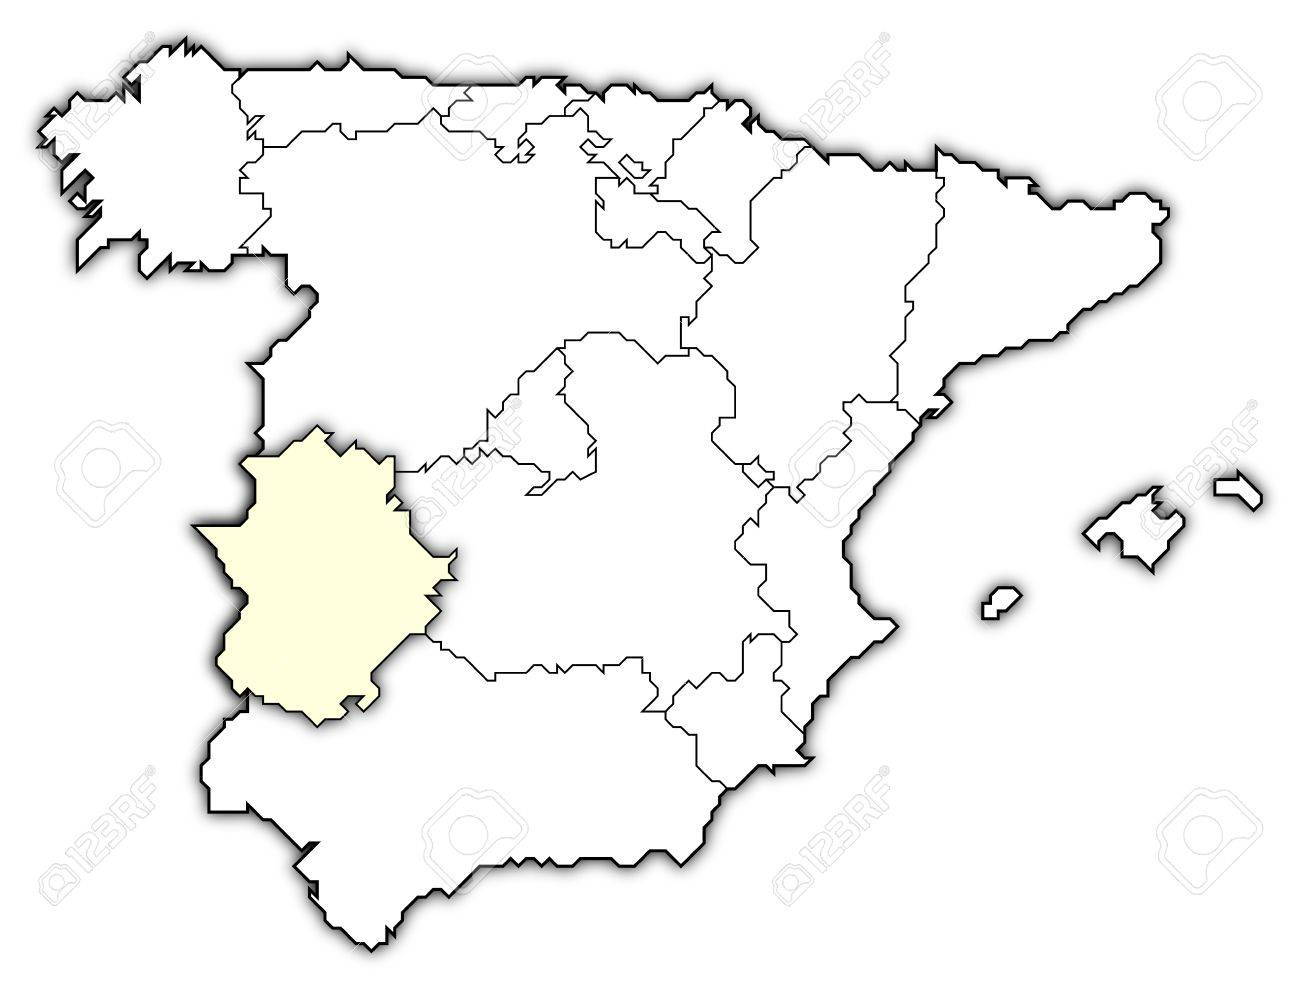 Map Of Spain Extremadura.Political Map Of Spain With The Several Regions Where Extremadura